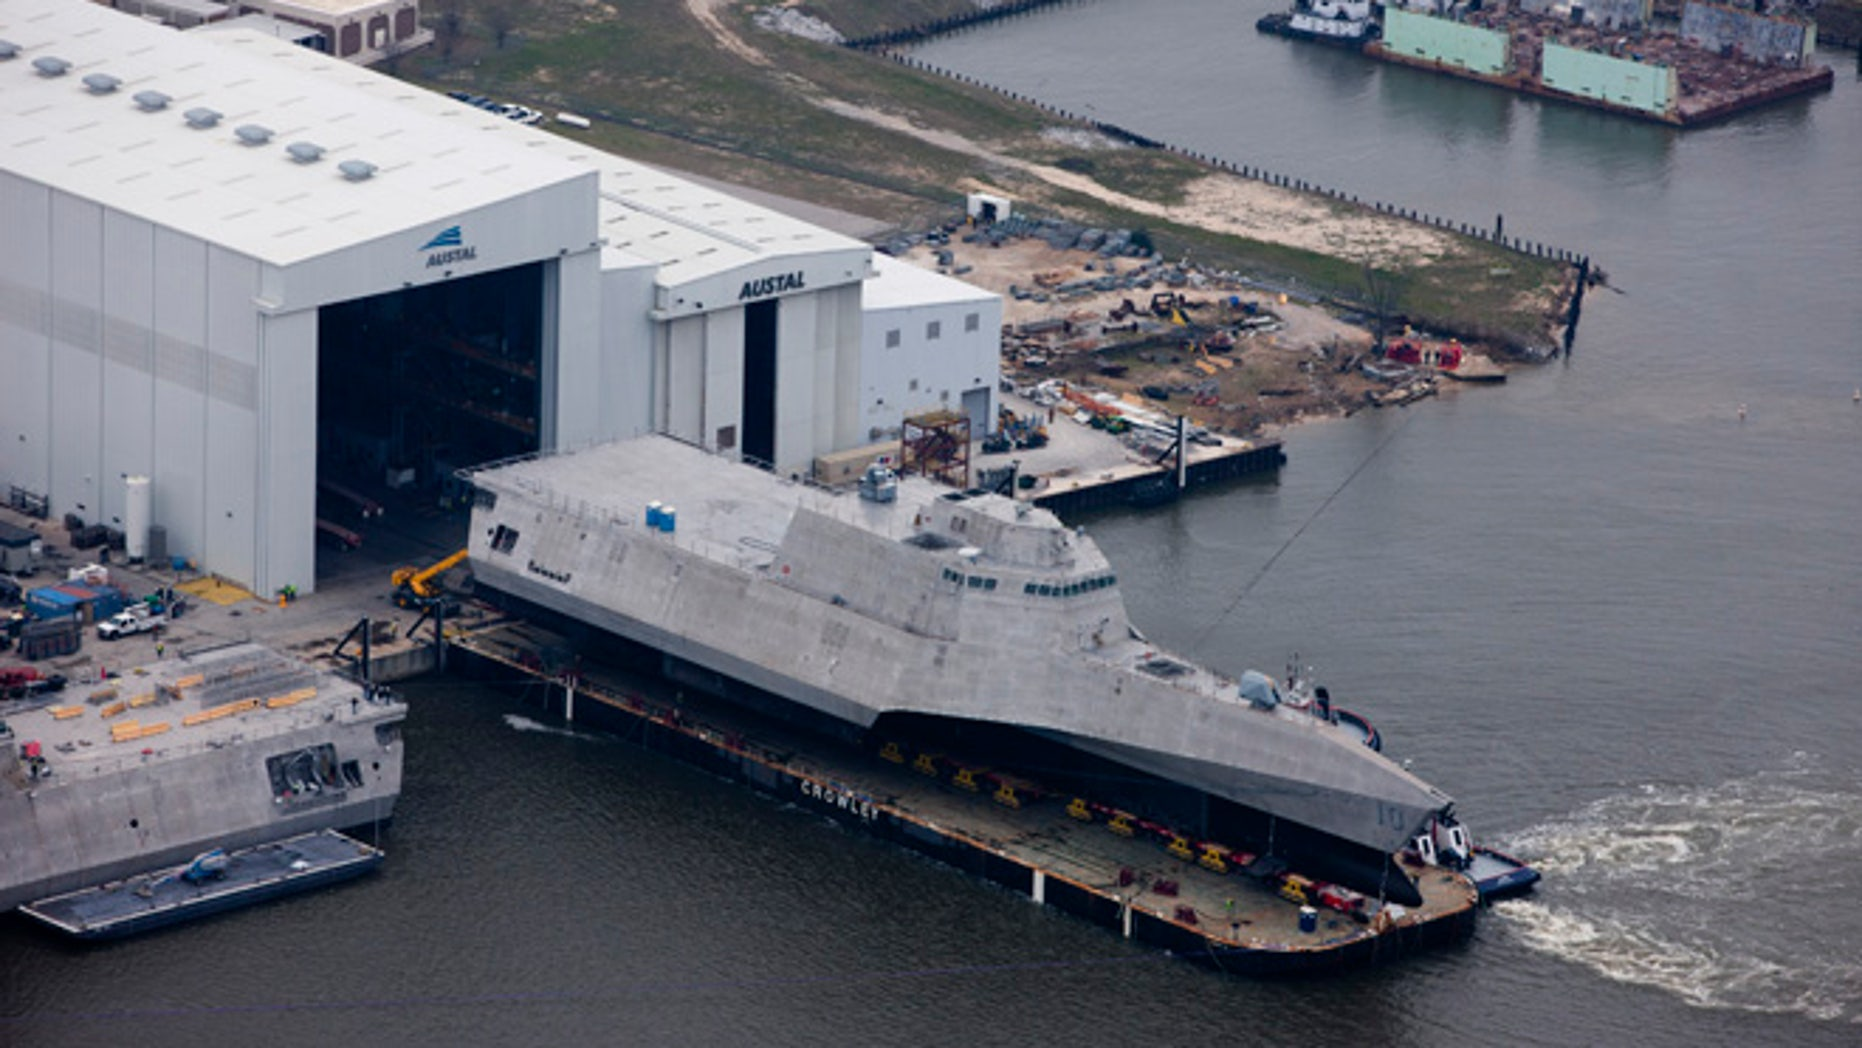 An aerial view of the future littoral combat ship USS Gabrielle Giffords (LCS 10) during its launch sequence at the Austal USA shipyard.